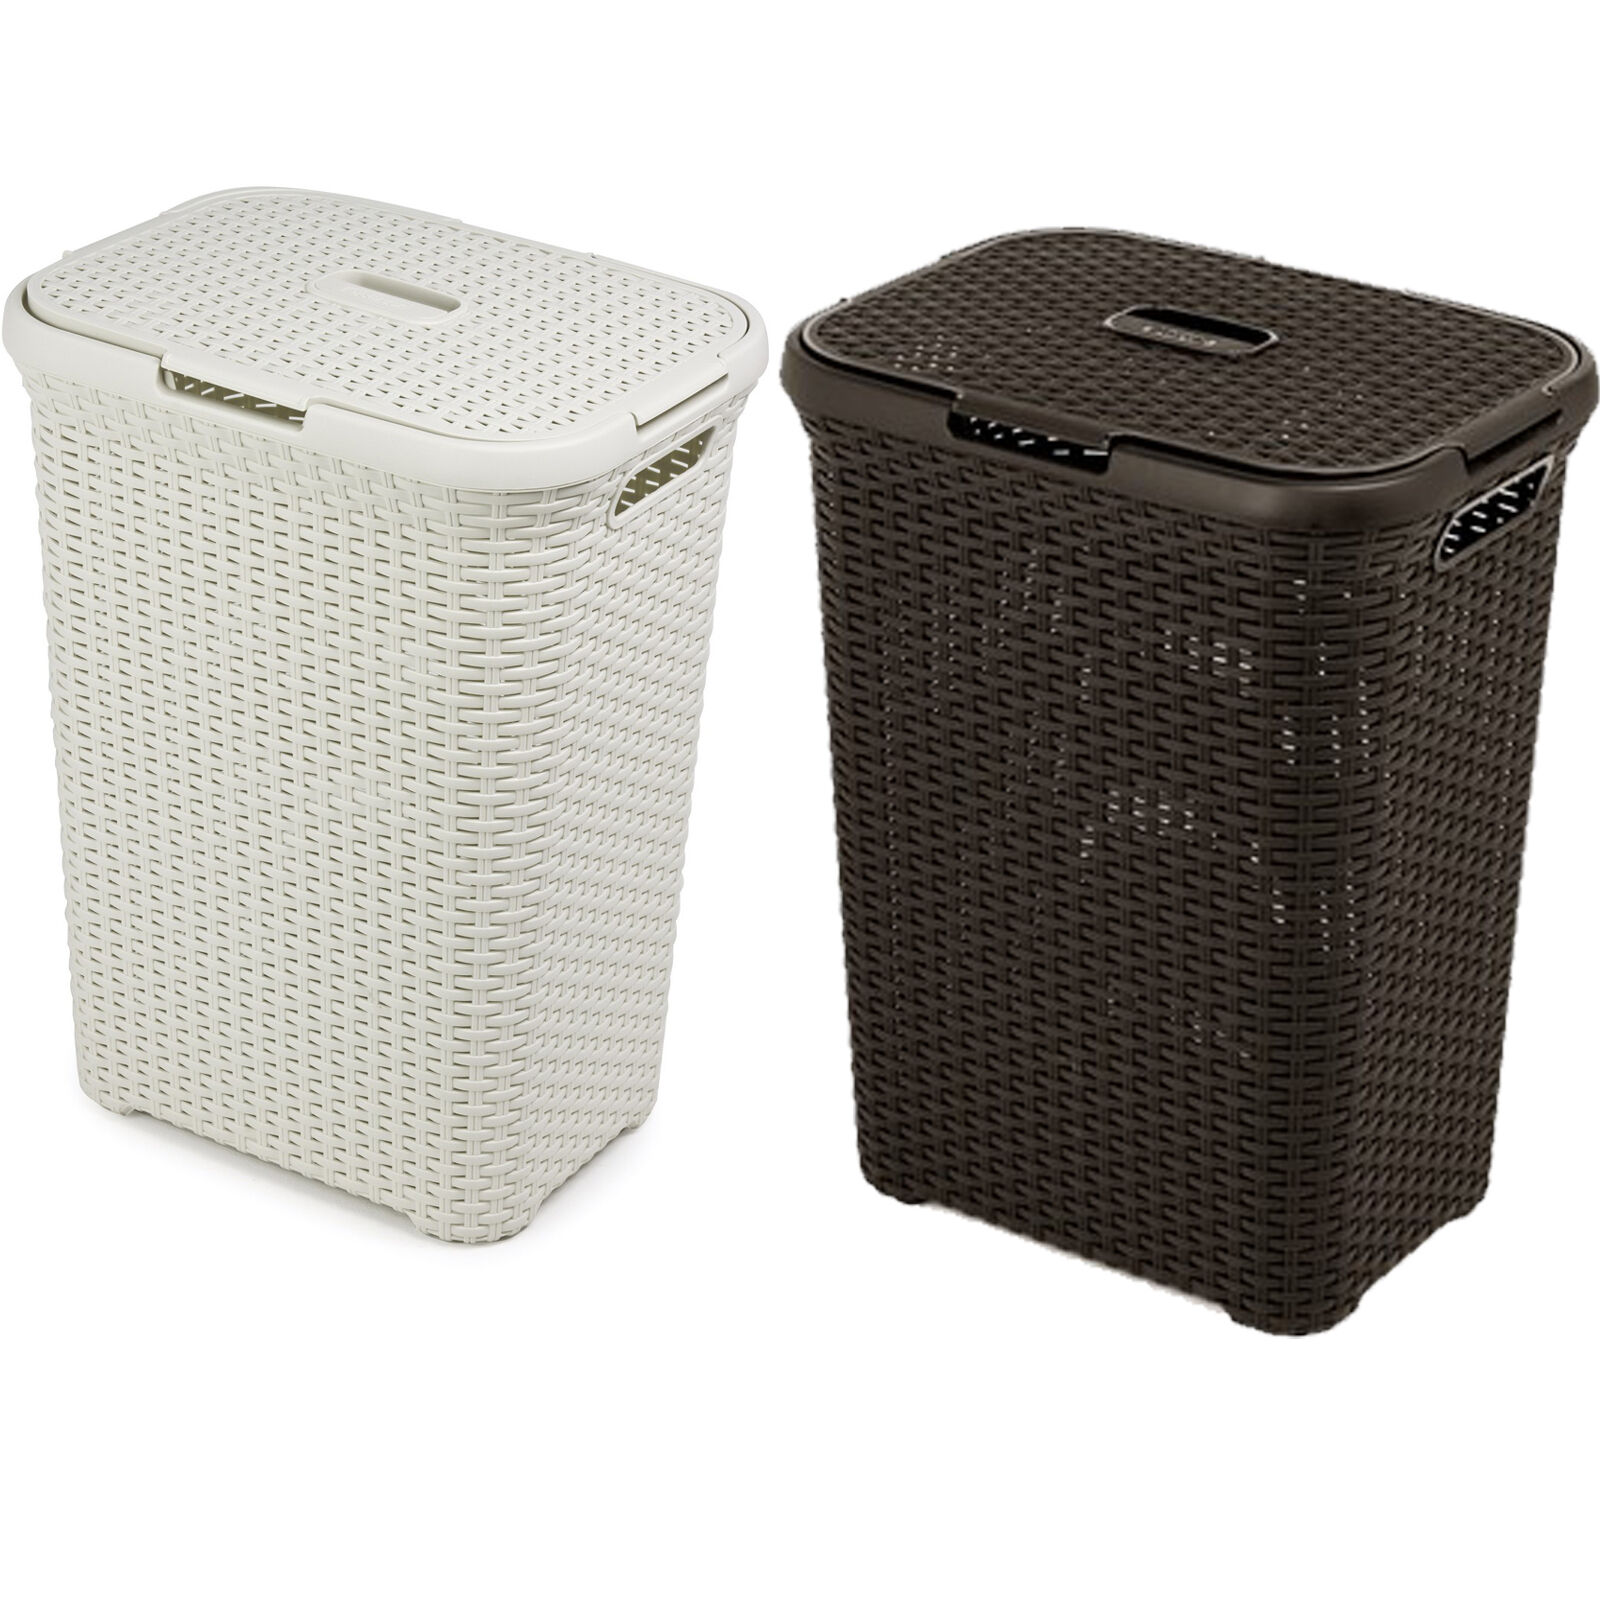 Elegant Laundry Hamper Rattan Design Laundry Bin Washing Basket Bucket Hamper